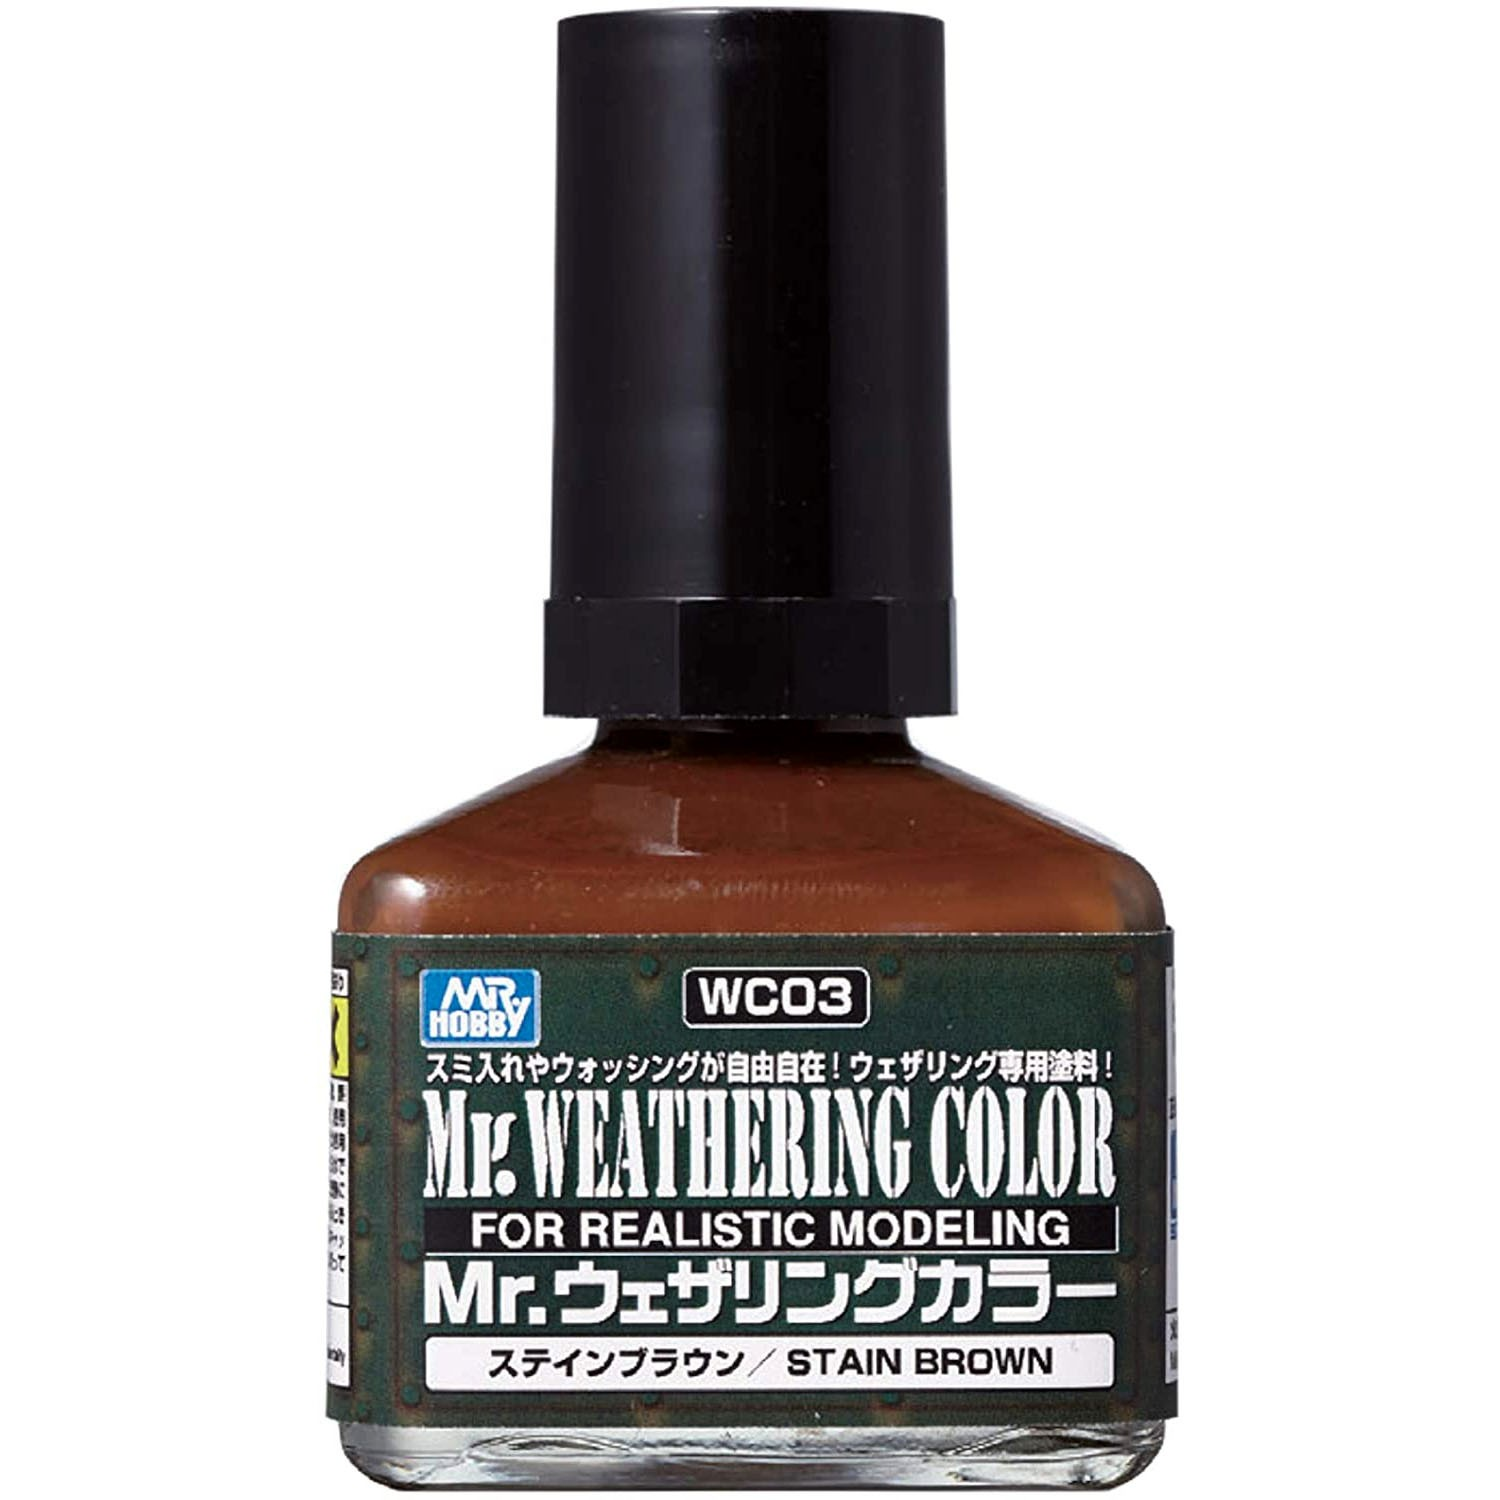 Mr.Weathering Color Stain Brown - Mr.Hobby WC03  - BLIMPS COMÉRCIO ELETRÔNICO